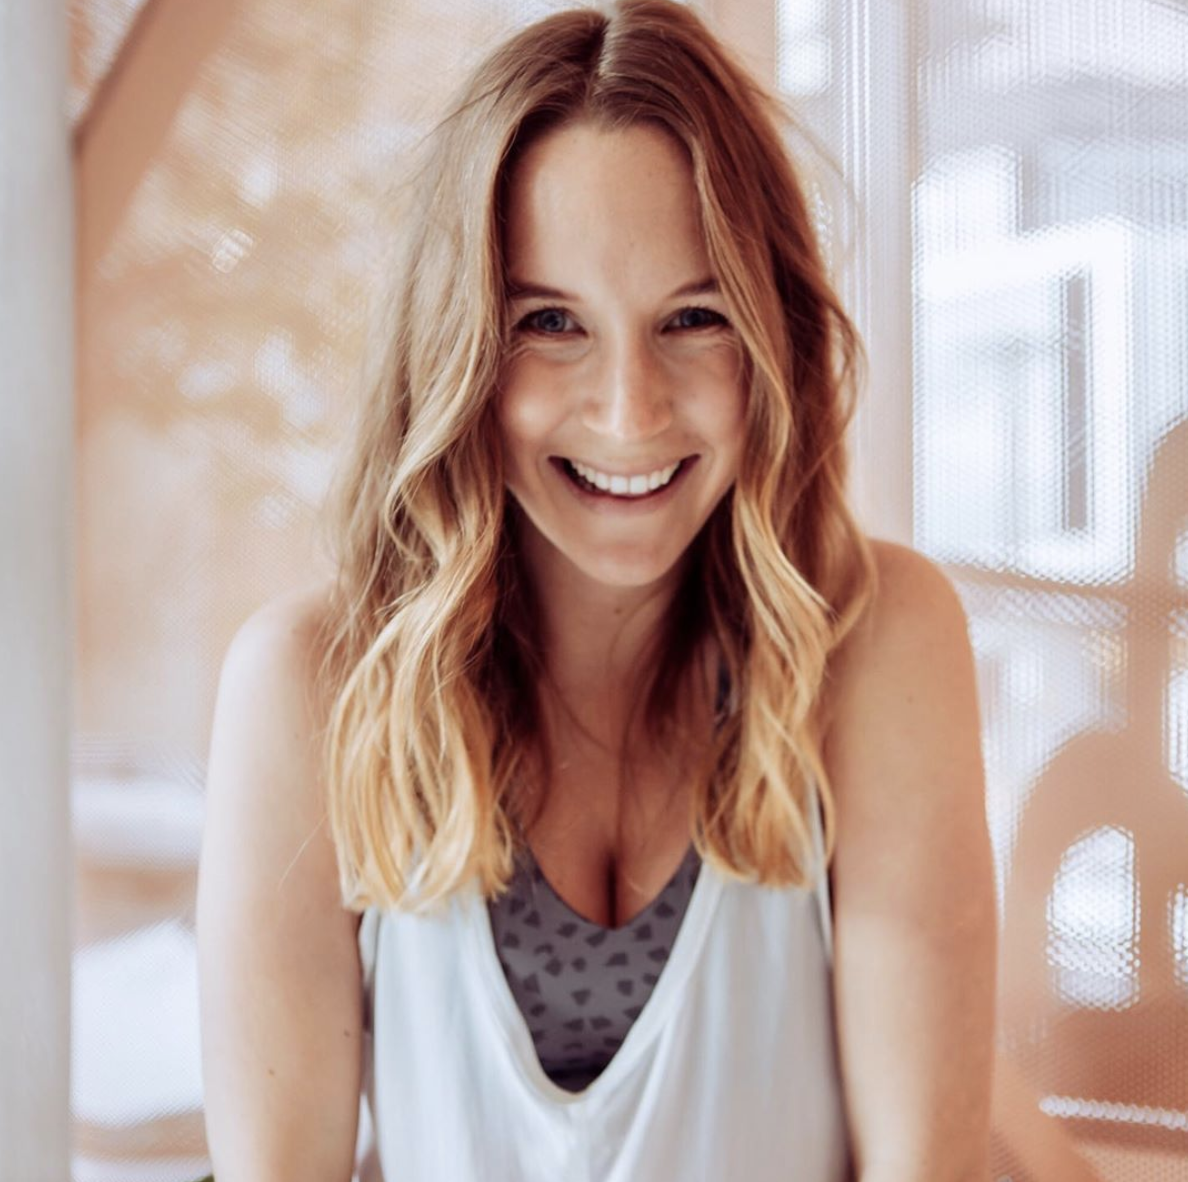 Madelyn Carafa - Madelyn is the Creator and Host of The Healthy Hustlers Podcast - she is passionate about sharing health and wellness advice after leaving the draining, corporate world.WEBSITE | INSTAGRAM